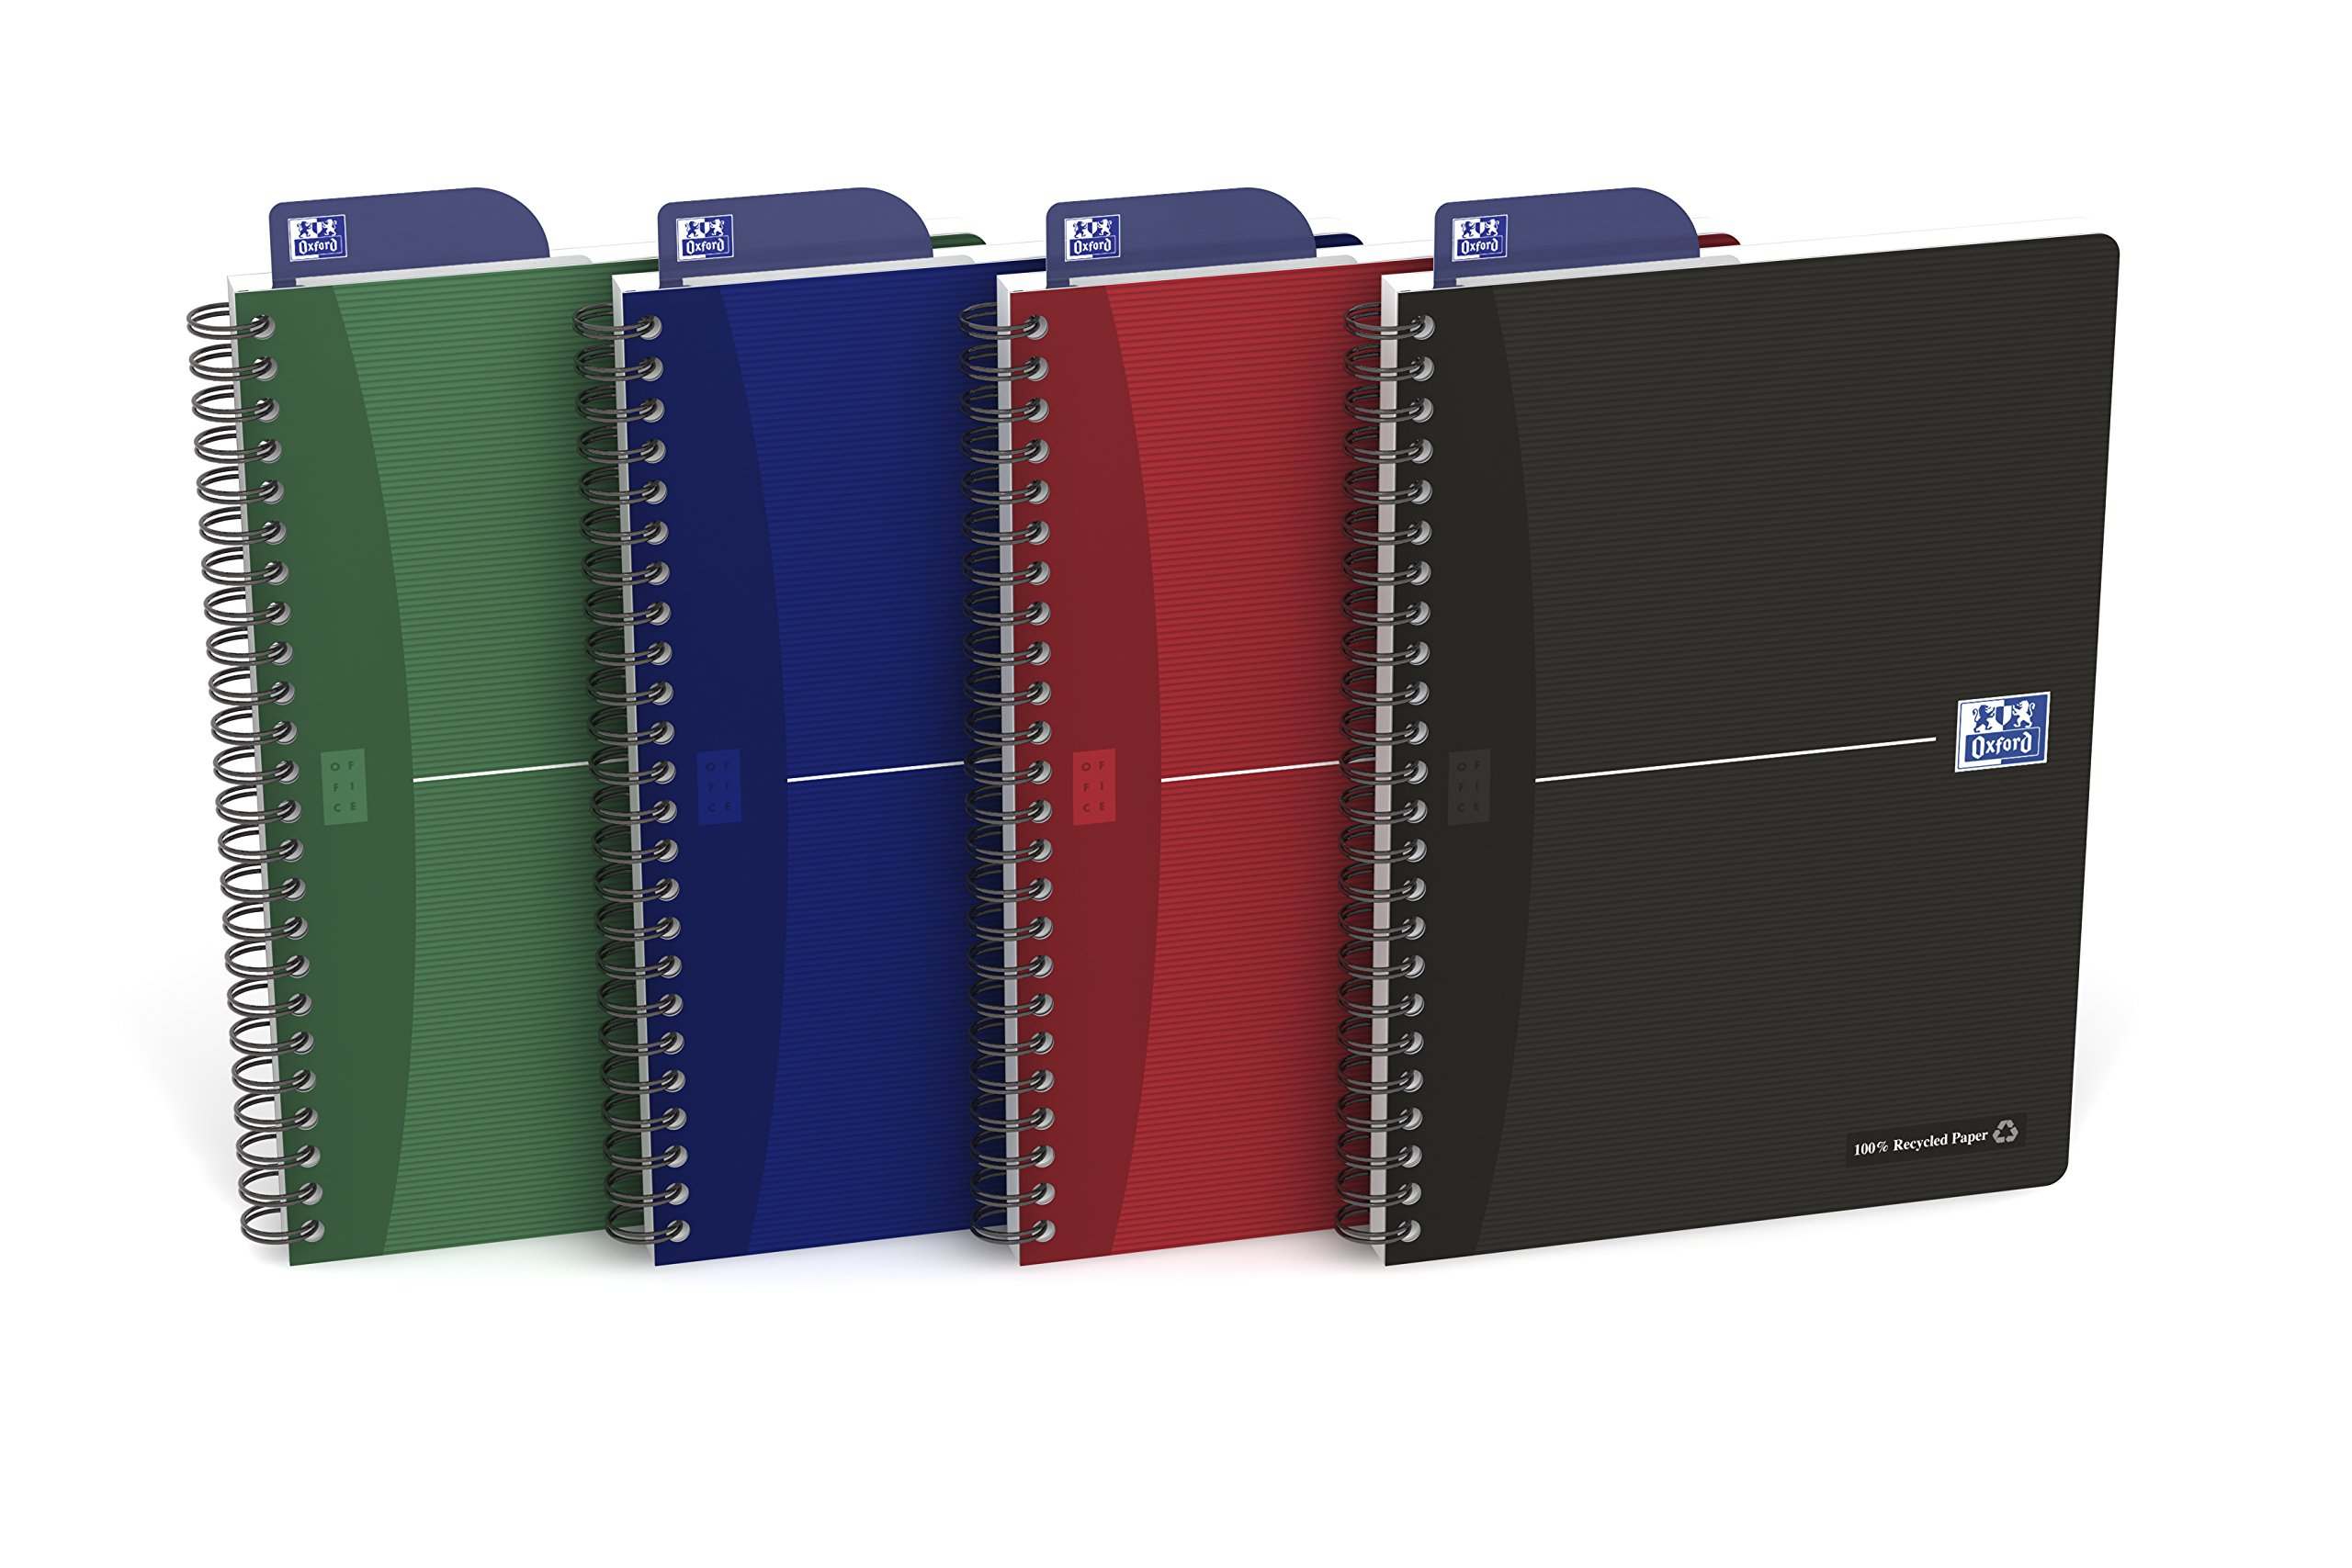 Oxford Office Recycle 100104311 Exercise Book Full Cover 180 Pages A5 Small Squares Assorted Pack of 5